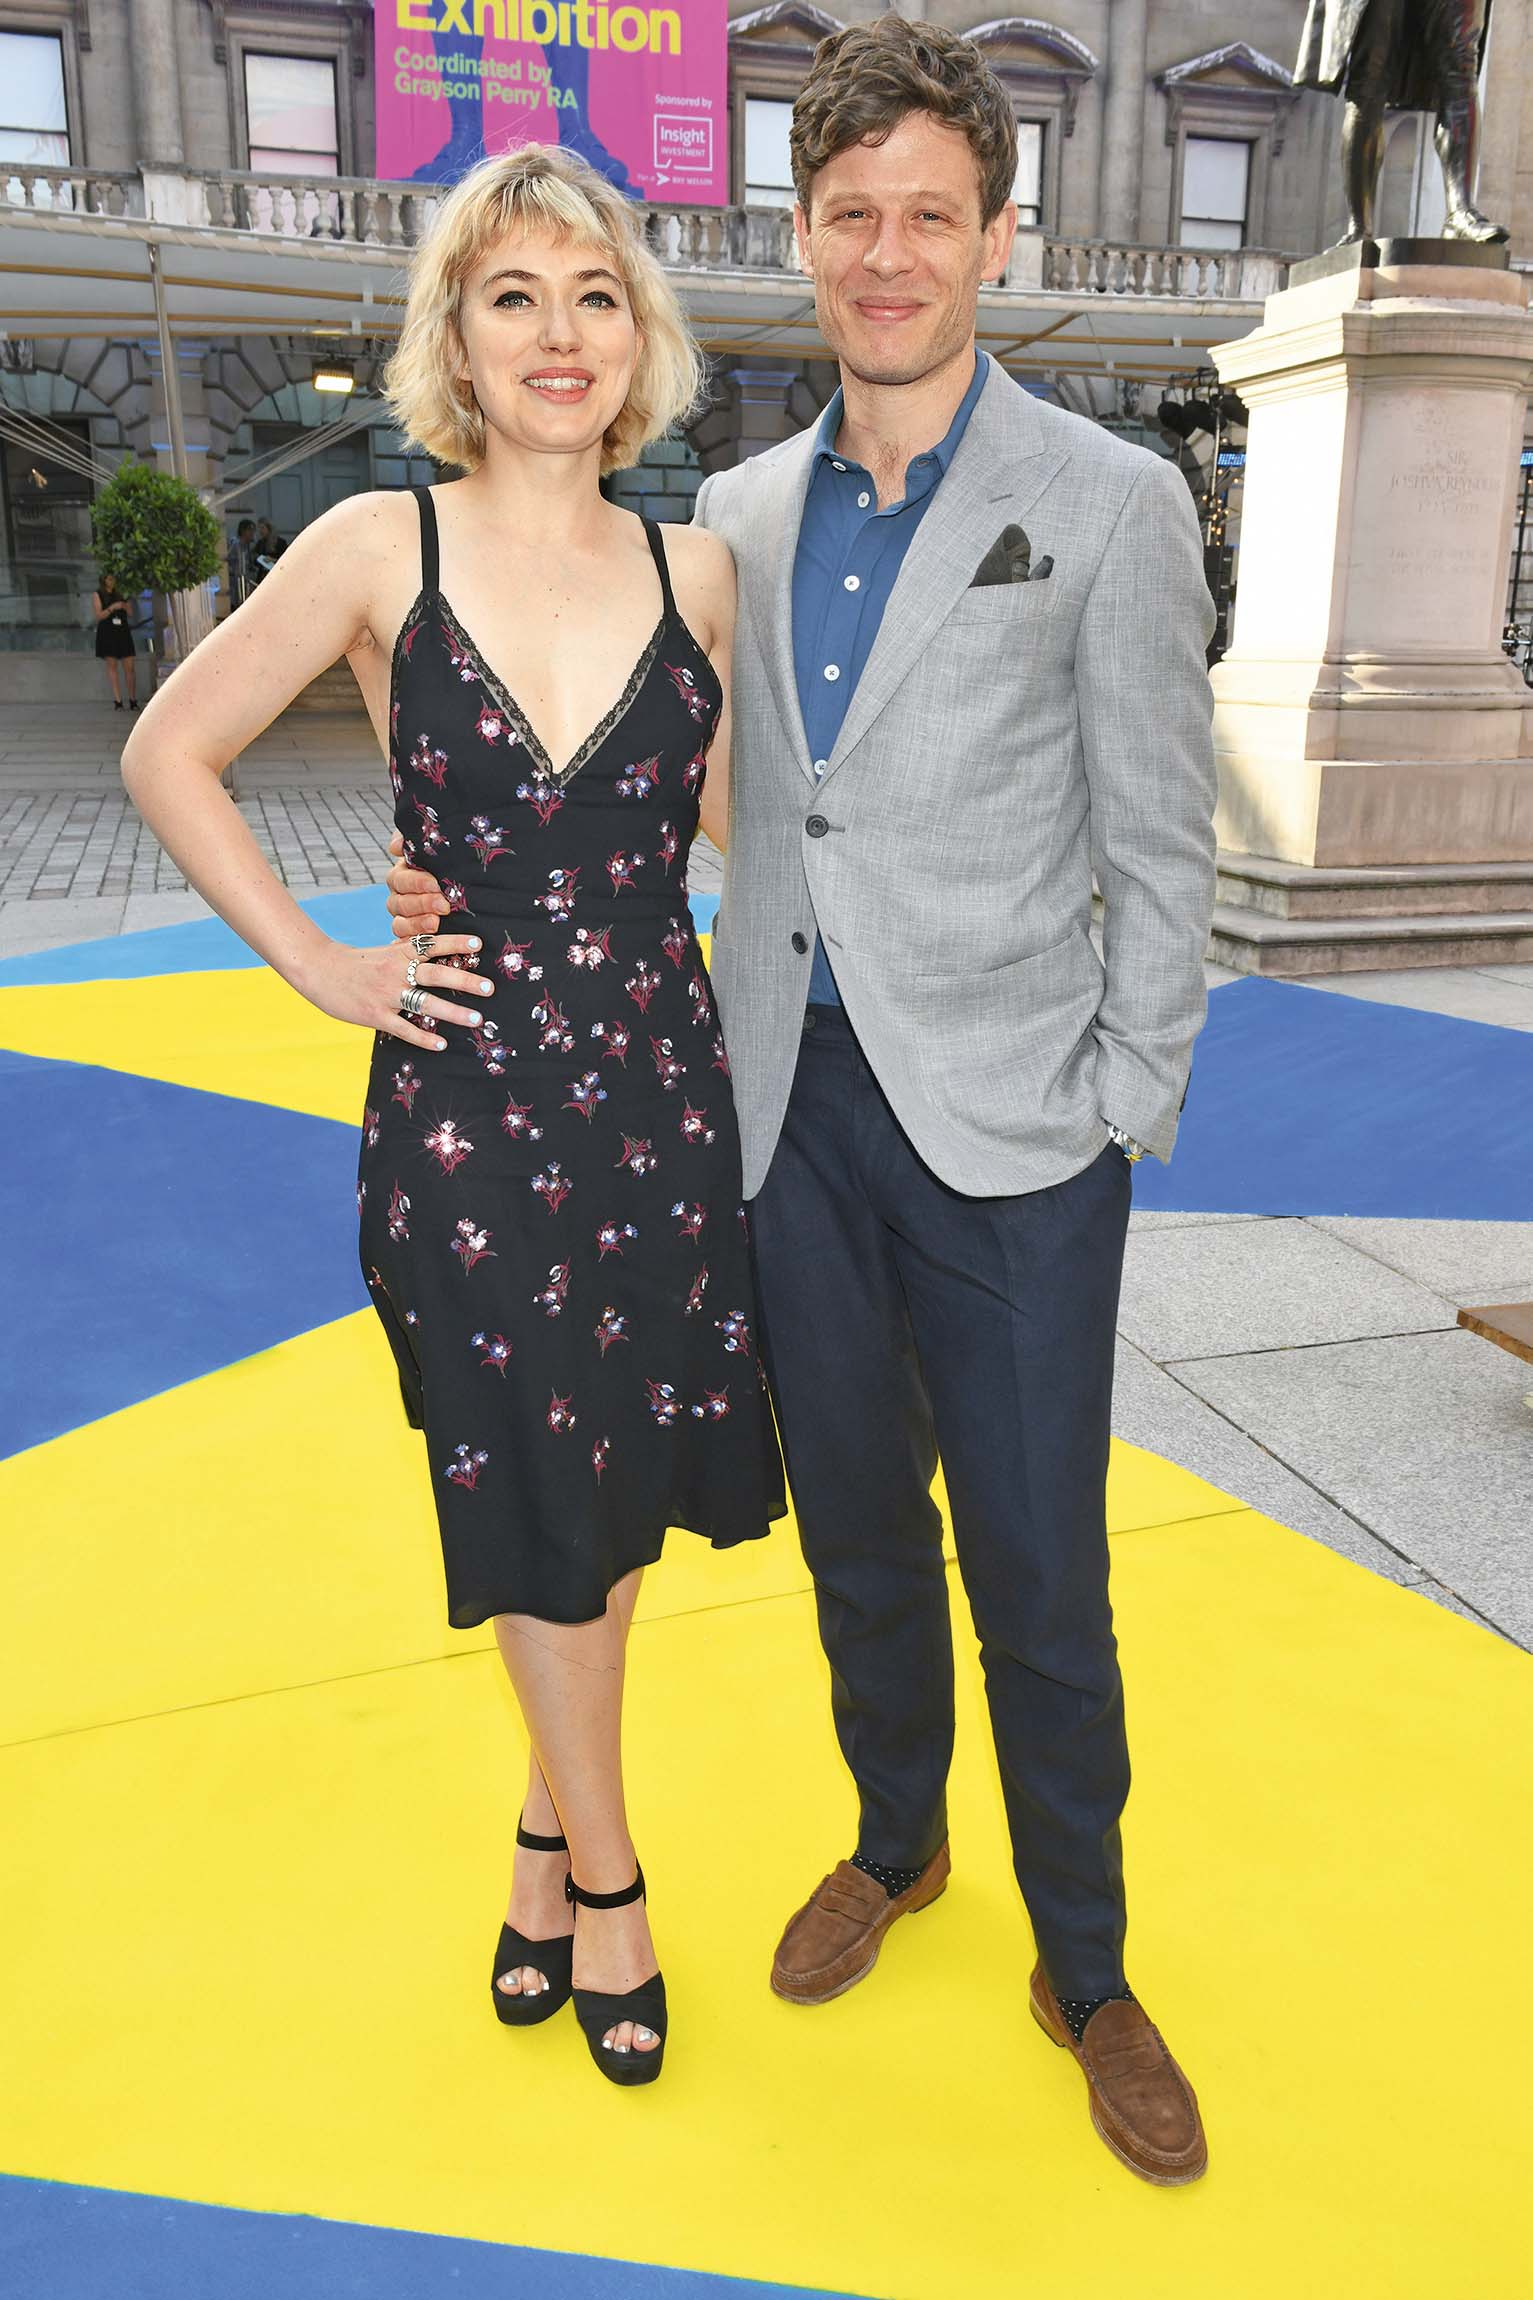 LONDON, ENGLAND - JUNE 06:  Imogen Poots (L) and James Norton attend the Royal Academy Of Arts summer exhibition preview party 2018 on June 6, 2018 in London, England.  (Photo by David M. Benett/Dave Benett/Getty Images)